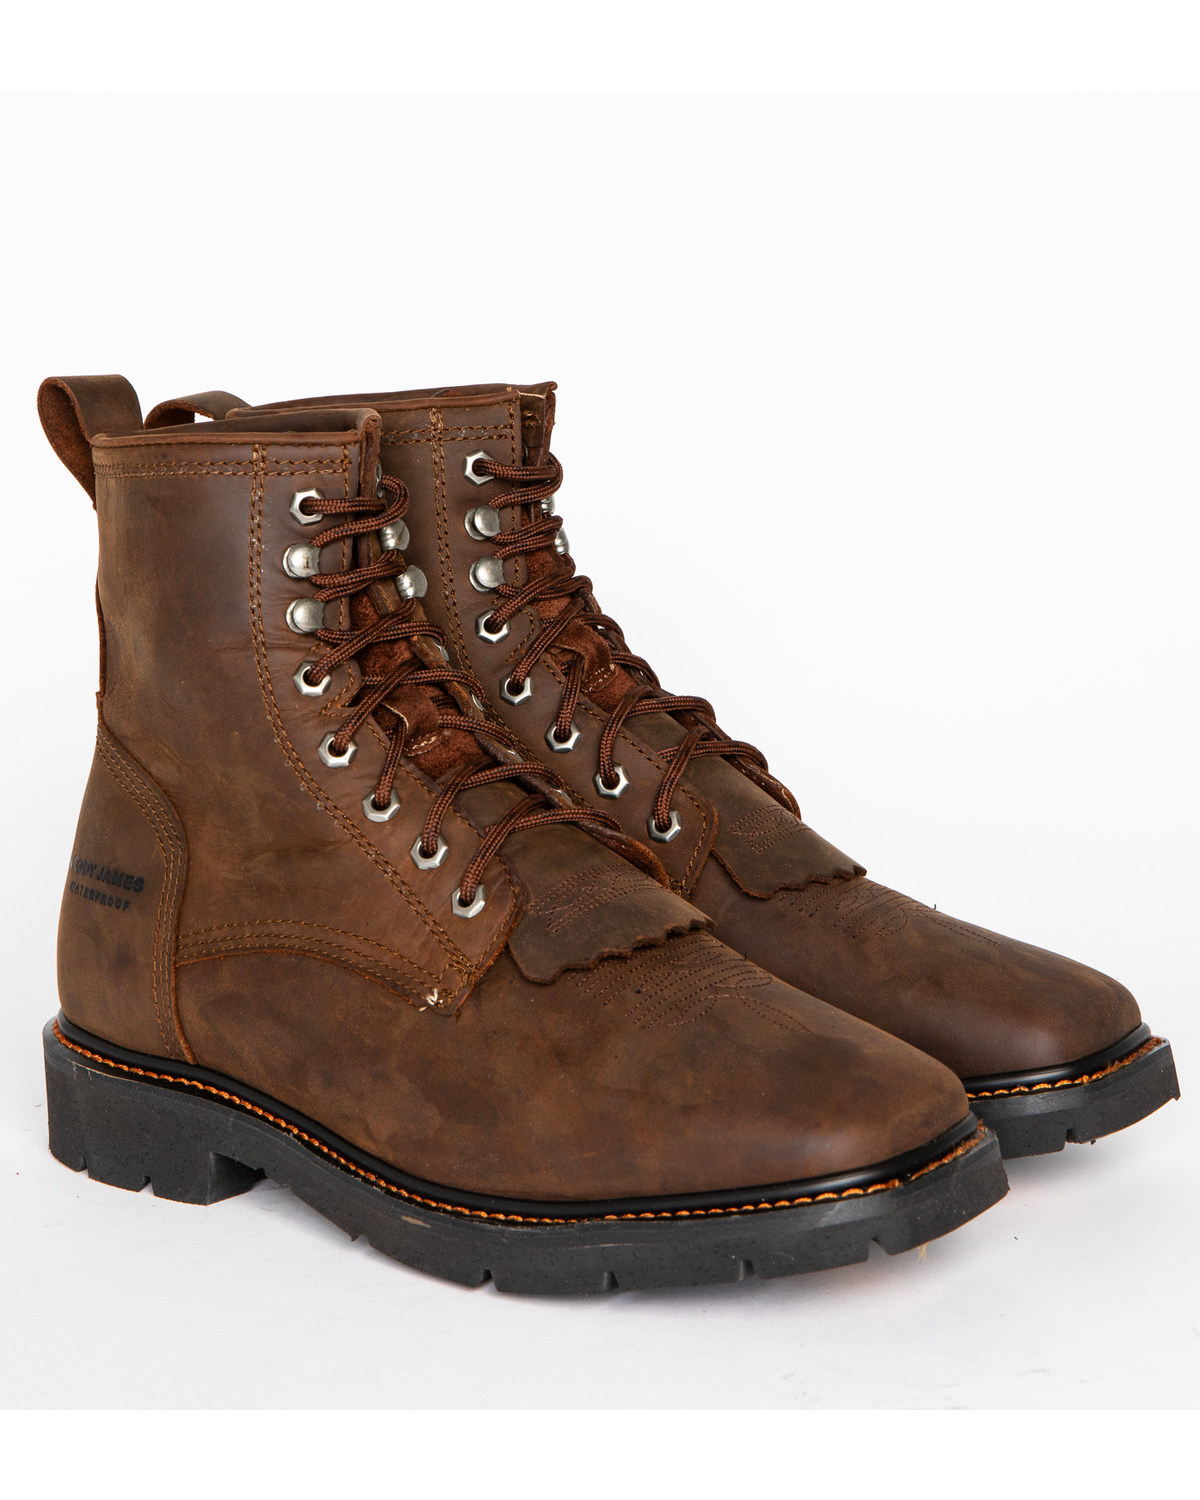 Cody James 174 Men S Waterproof Lace Up Western Work Boots